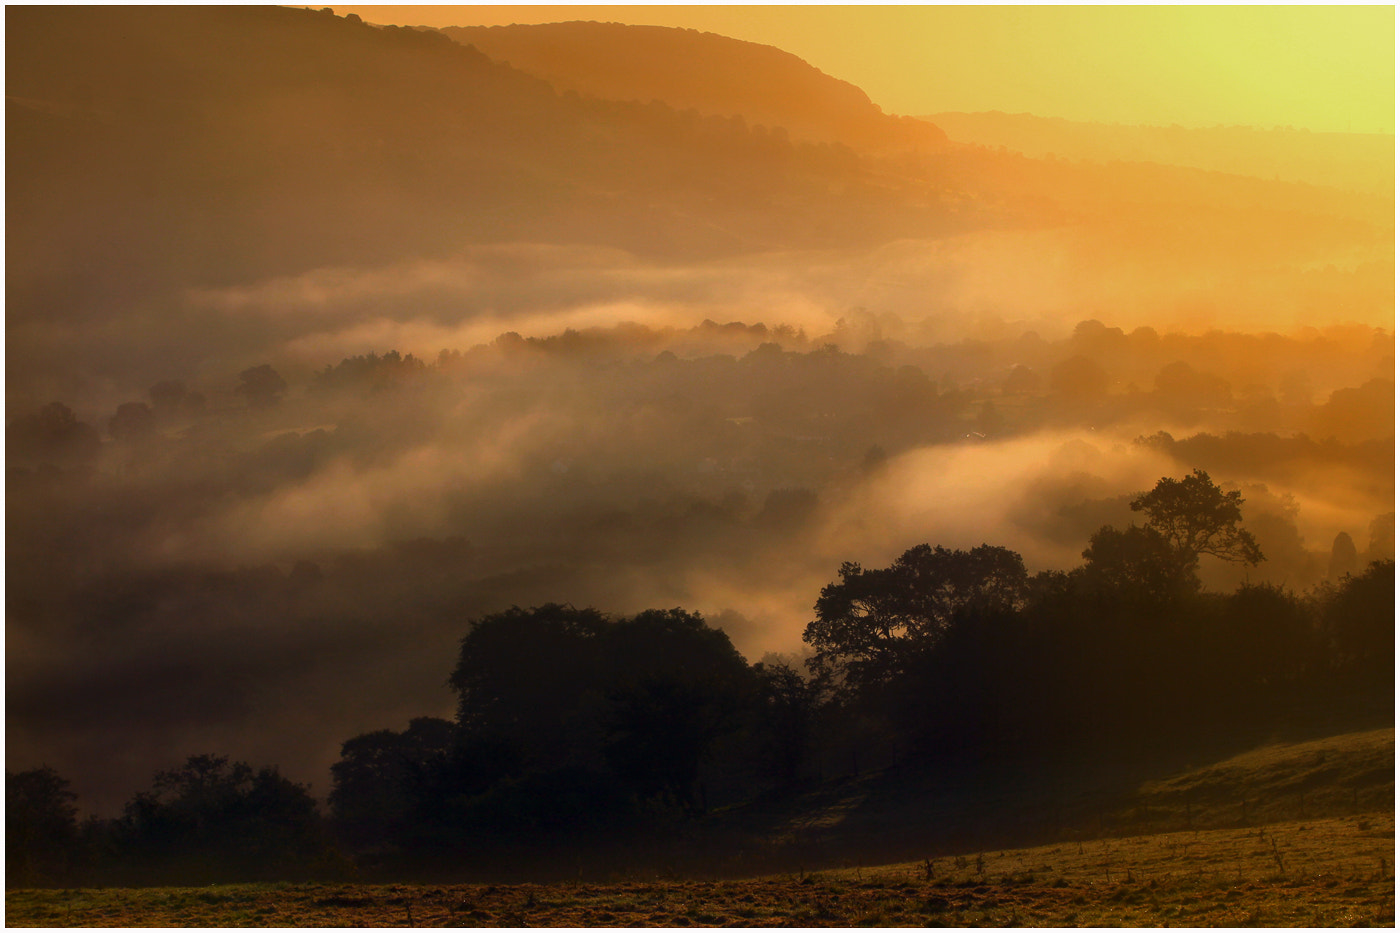 Photograph The Morning Hues by Alan Coles on 500px